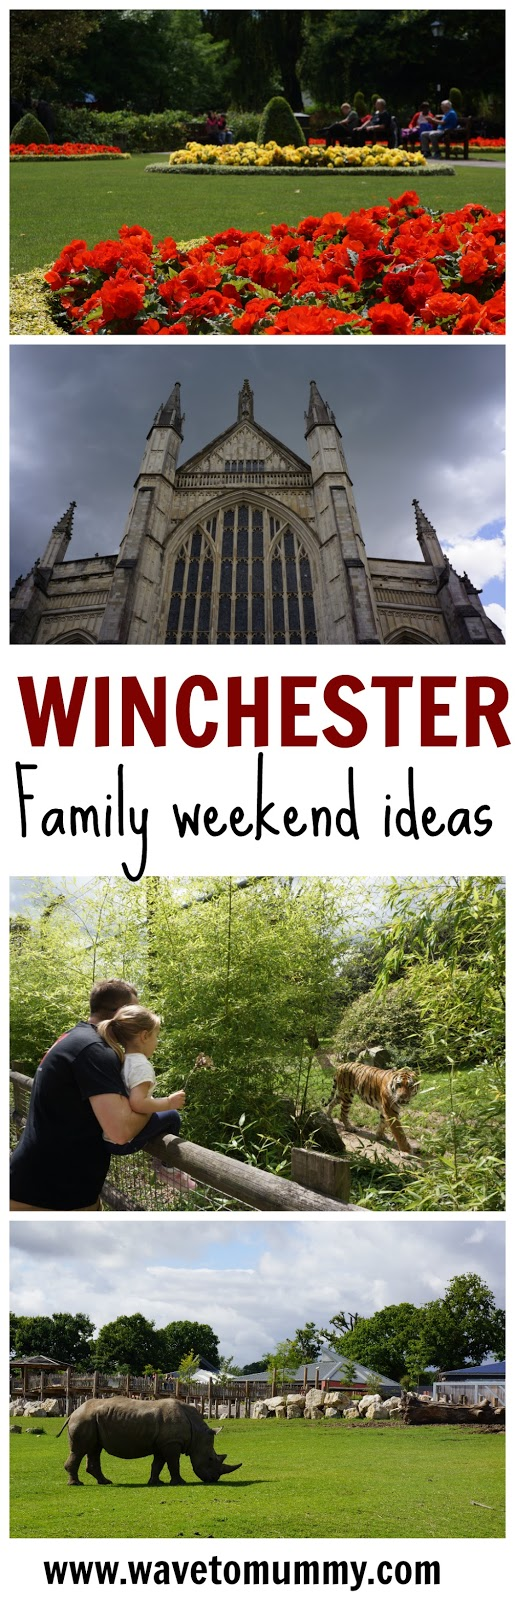 How to spend a weekend in Winchester with kids - ideas for a family weekend!